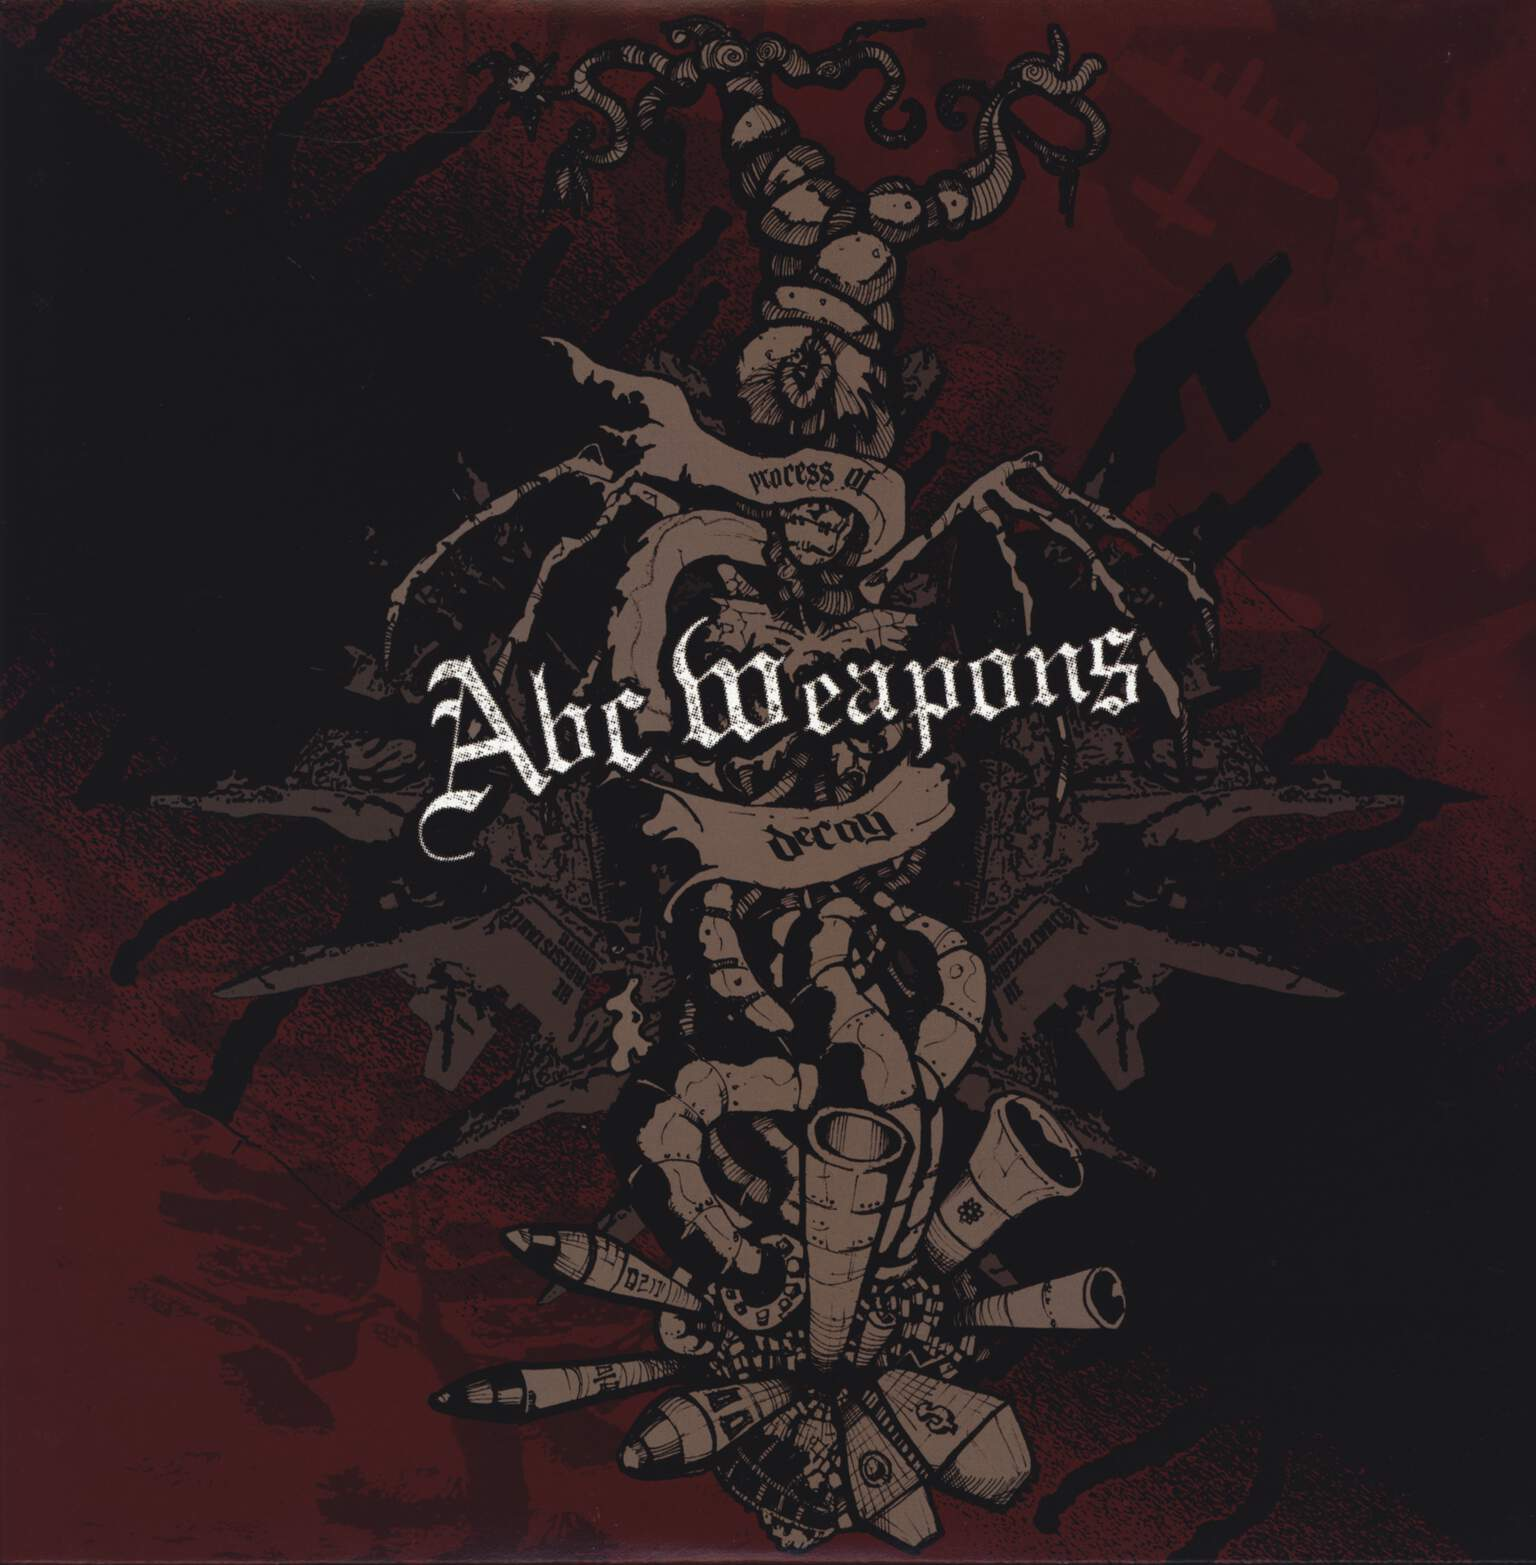 "ABC Weapons: The Process Of Decay, 12"" Maxi Single (Vinyl)"